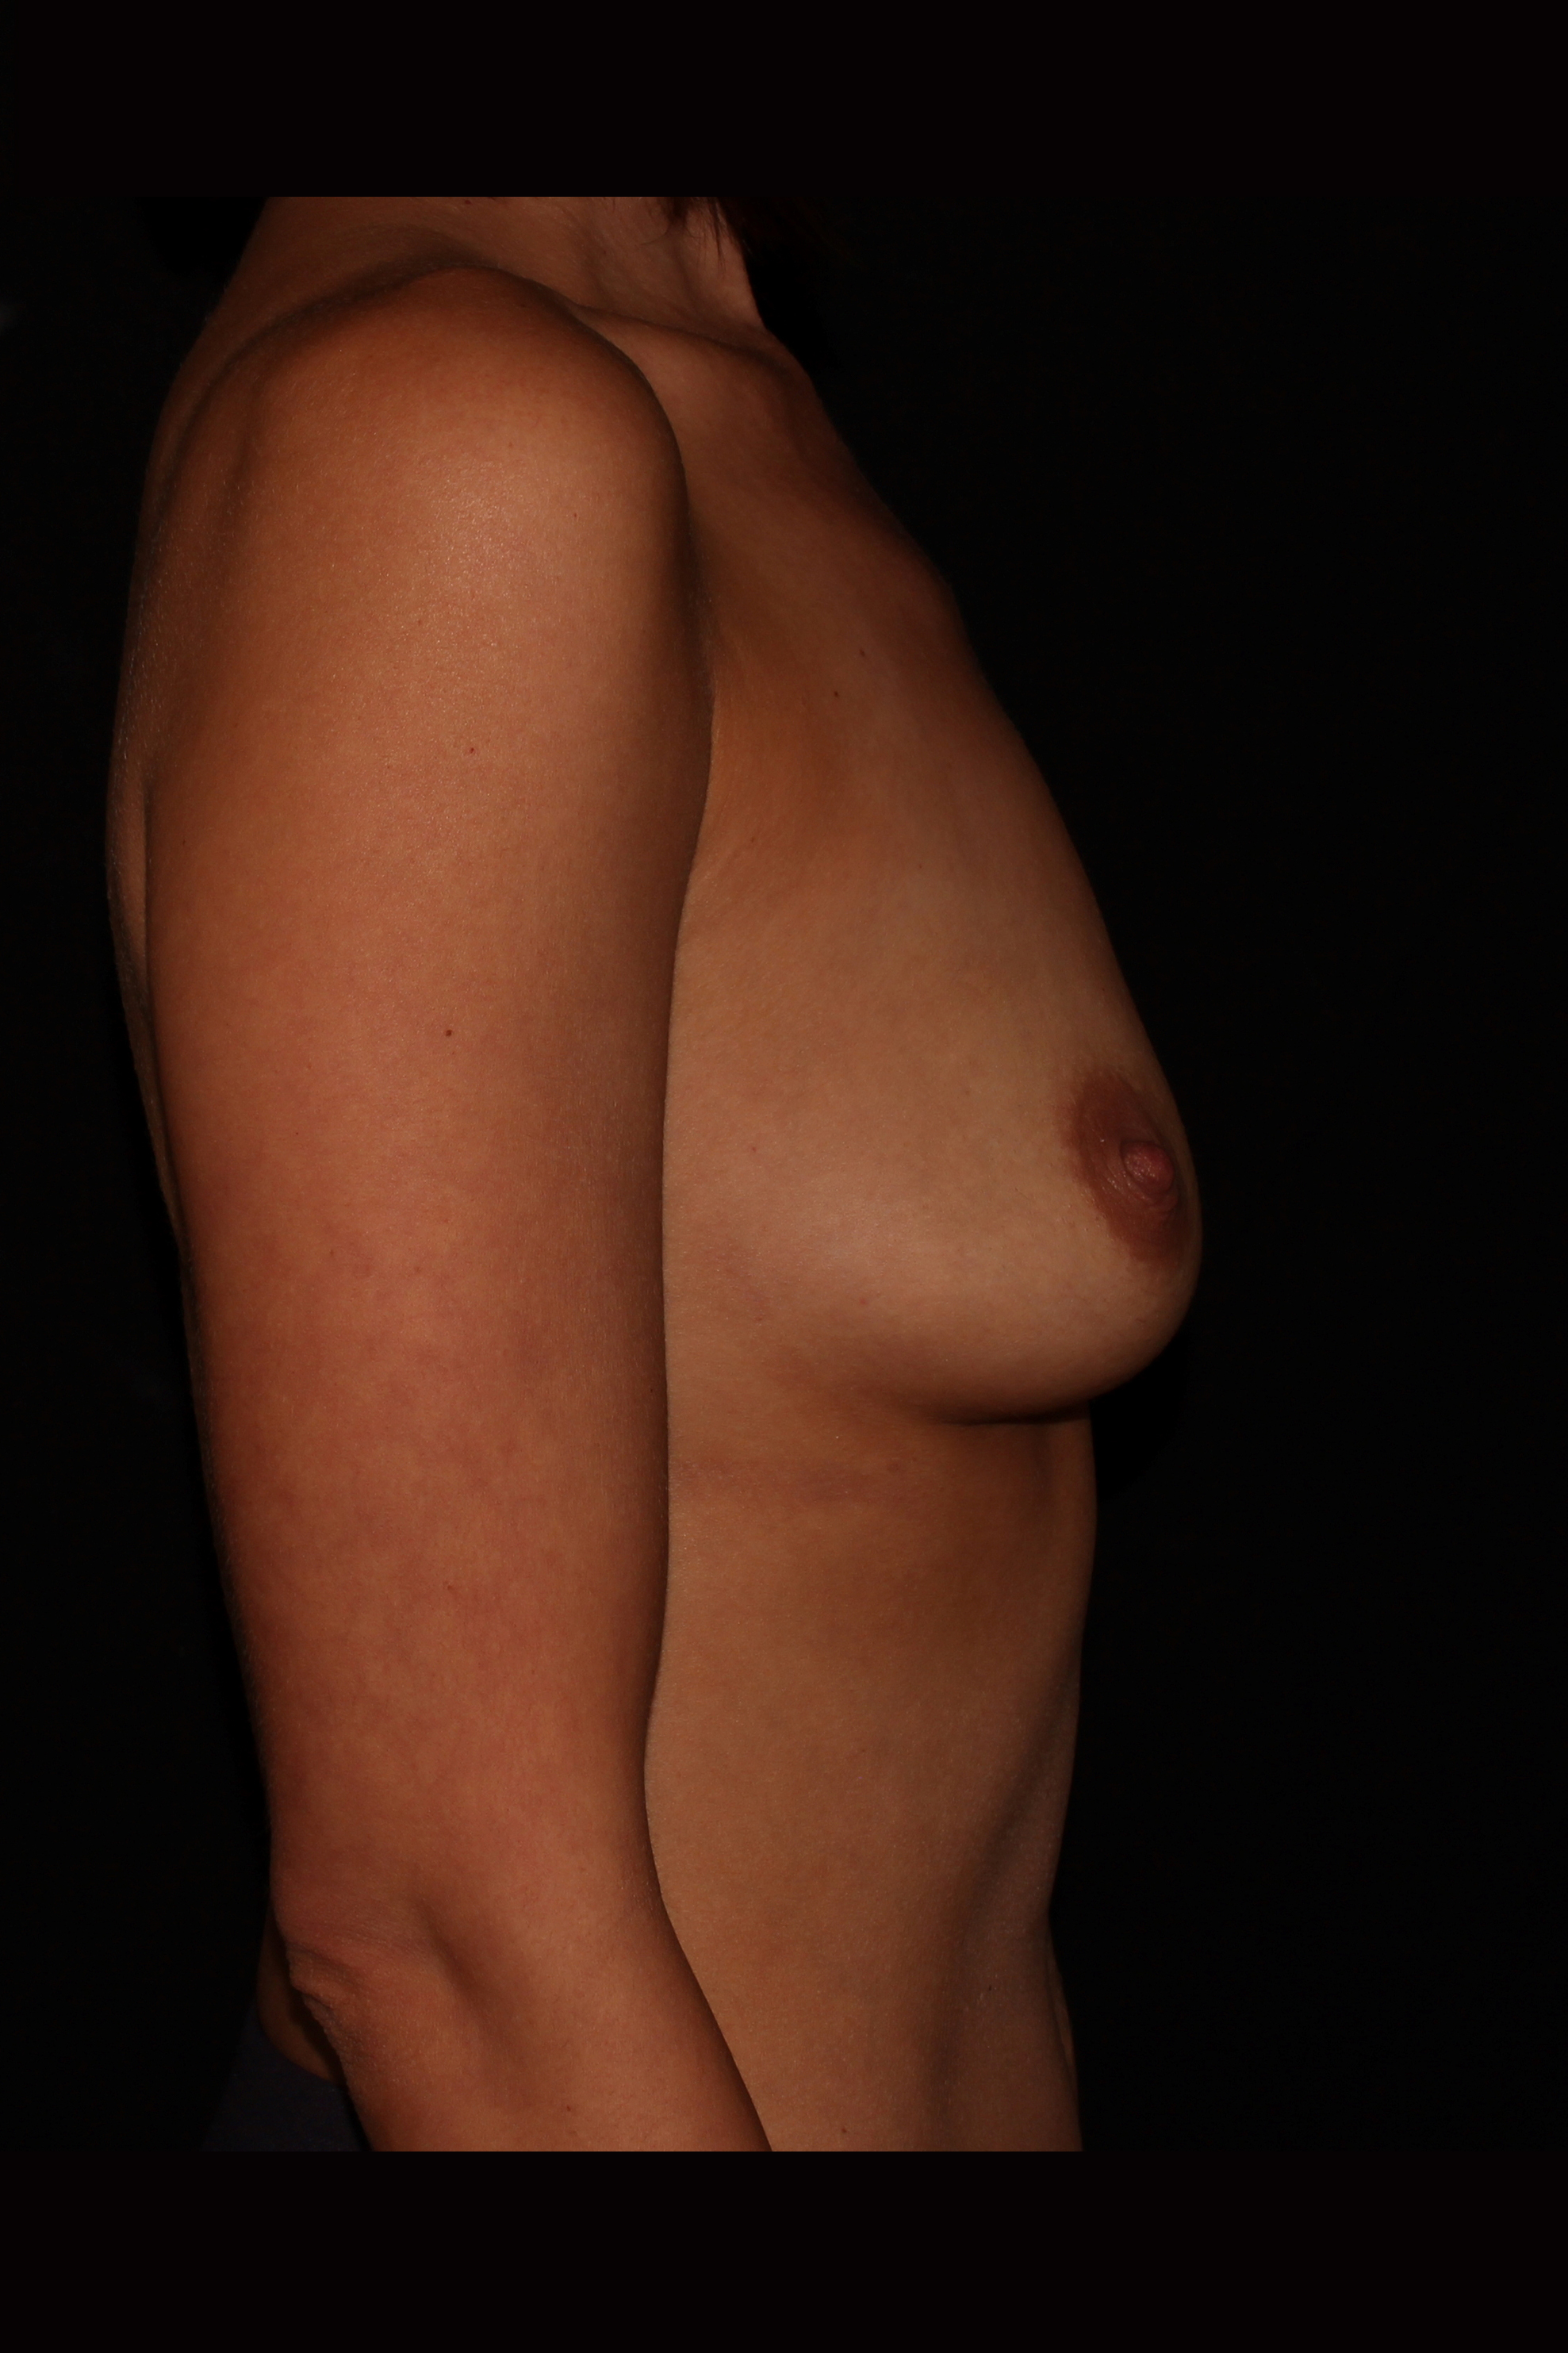 Before Breast Augmentation - Side